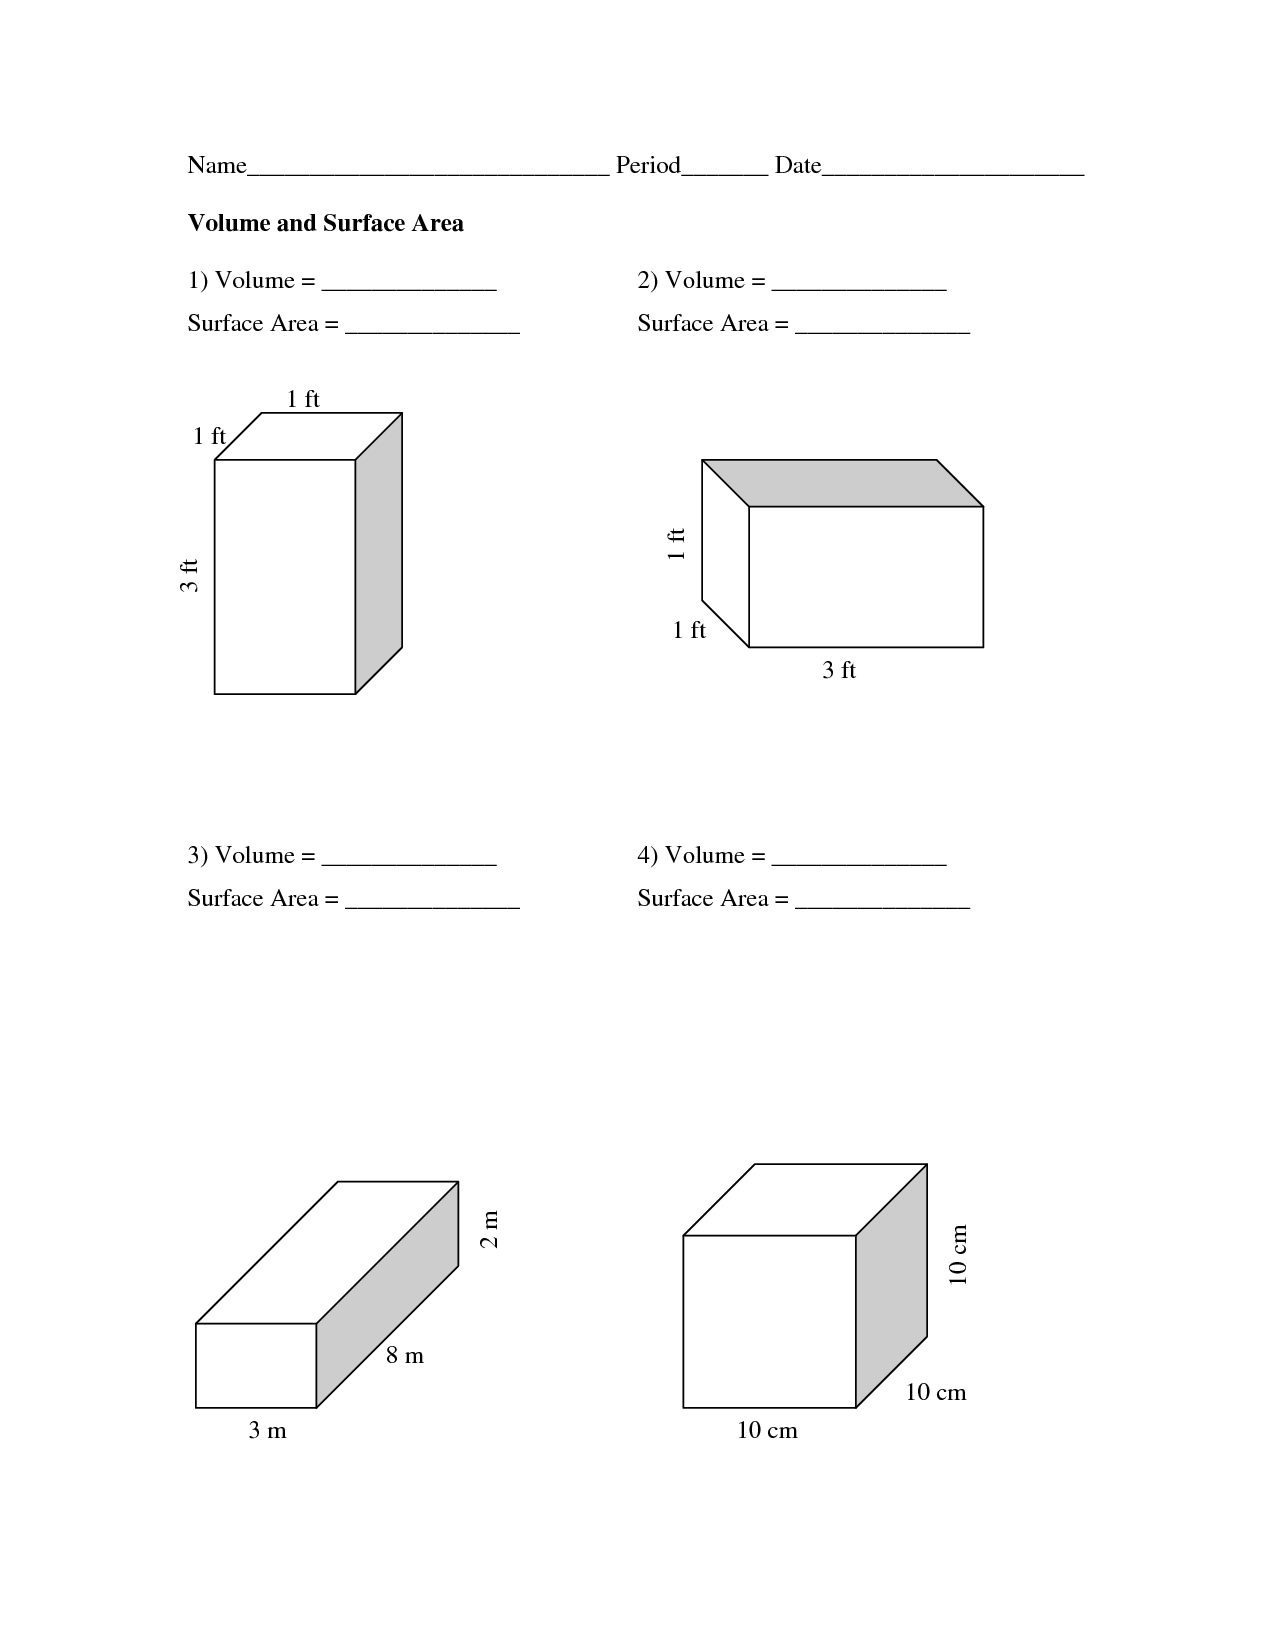 hight resolution of volume and surface area worksheets   Volume and Surface Area Worksheets -  PDF   Area worksheets